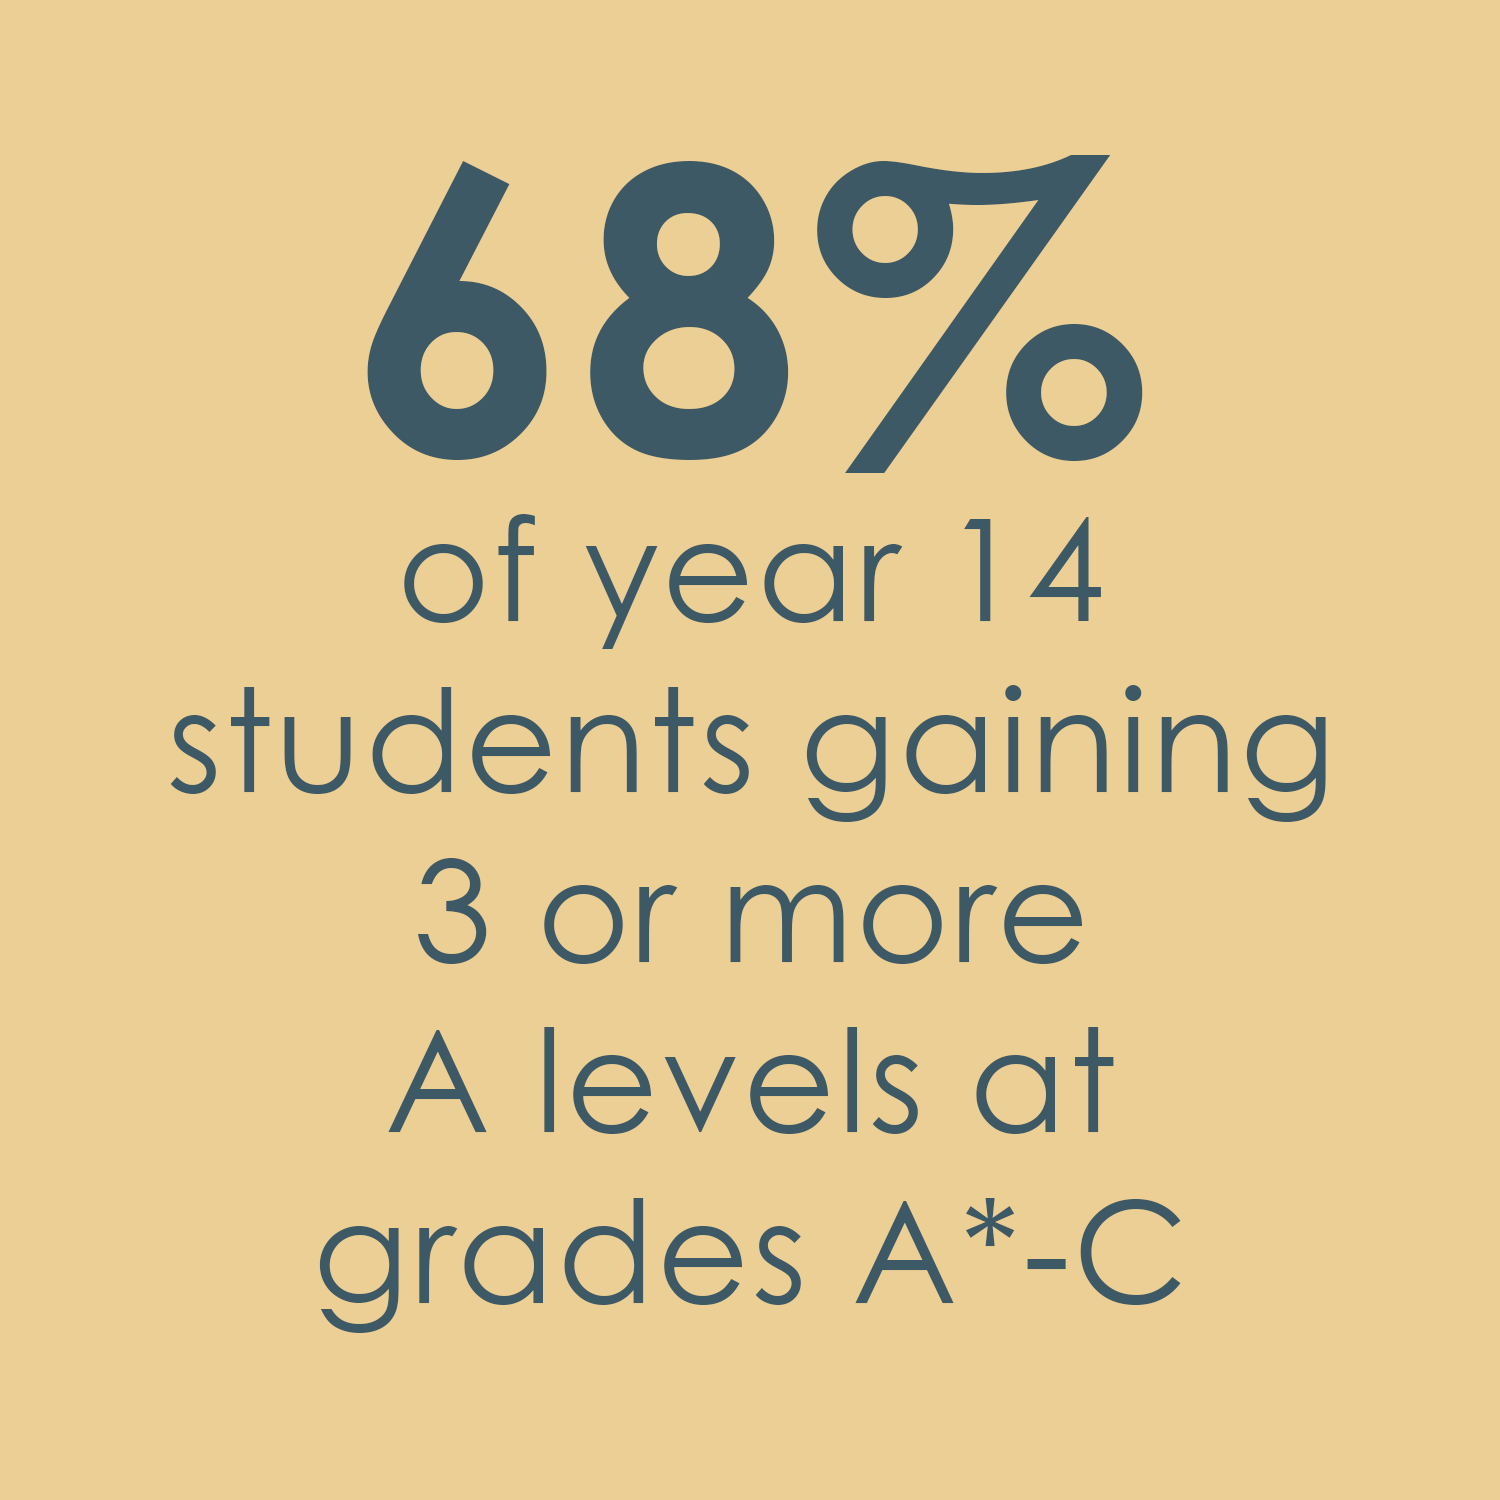 68% of year 14 students gaining 3 or more A levels at grades A*-C